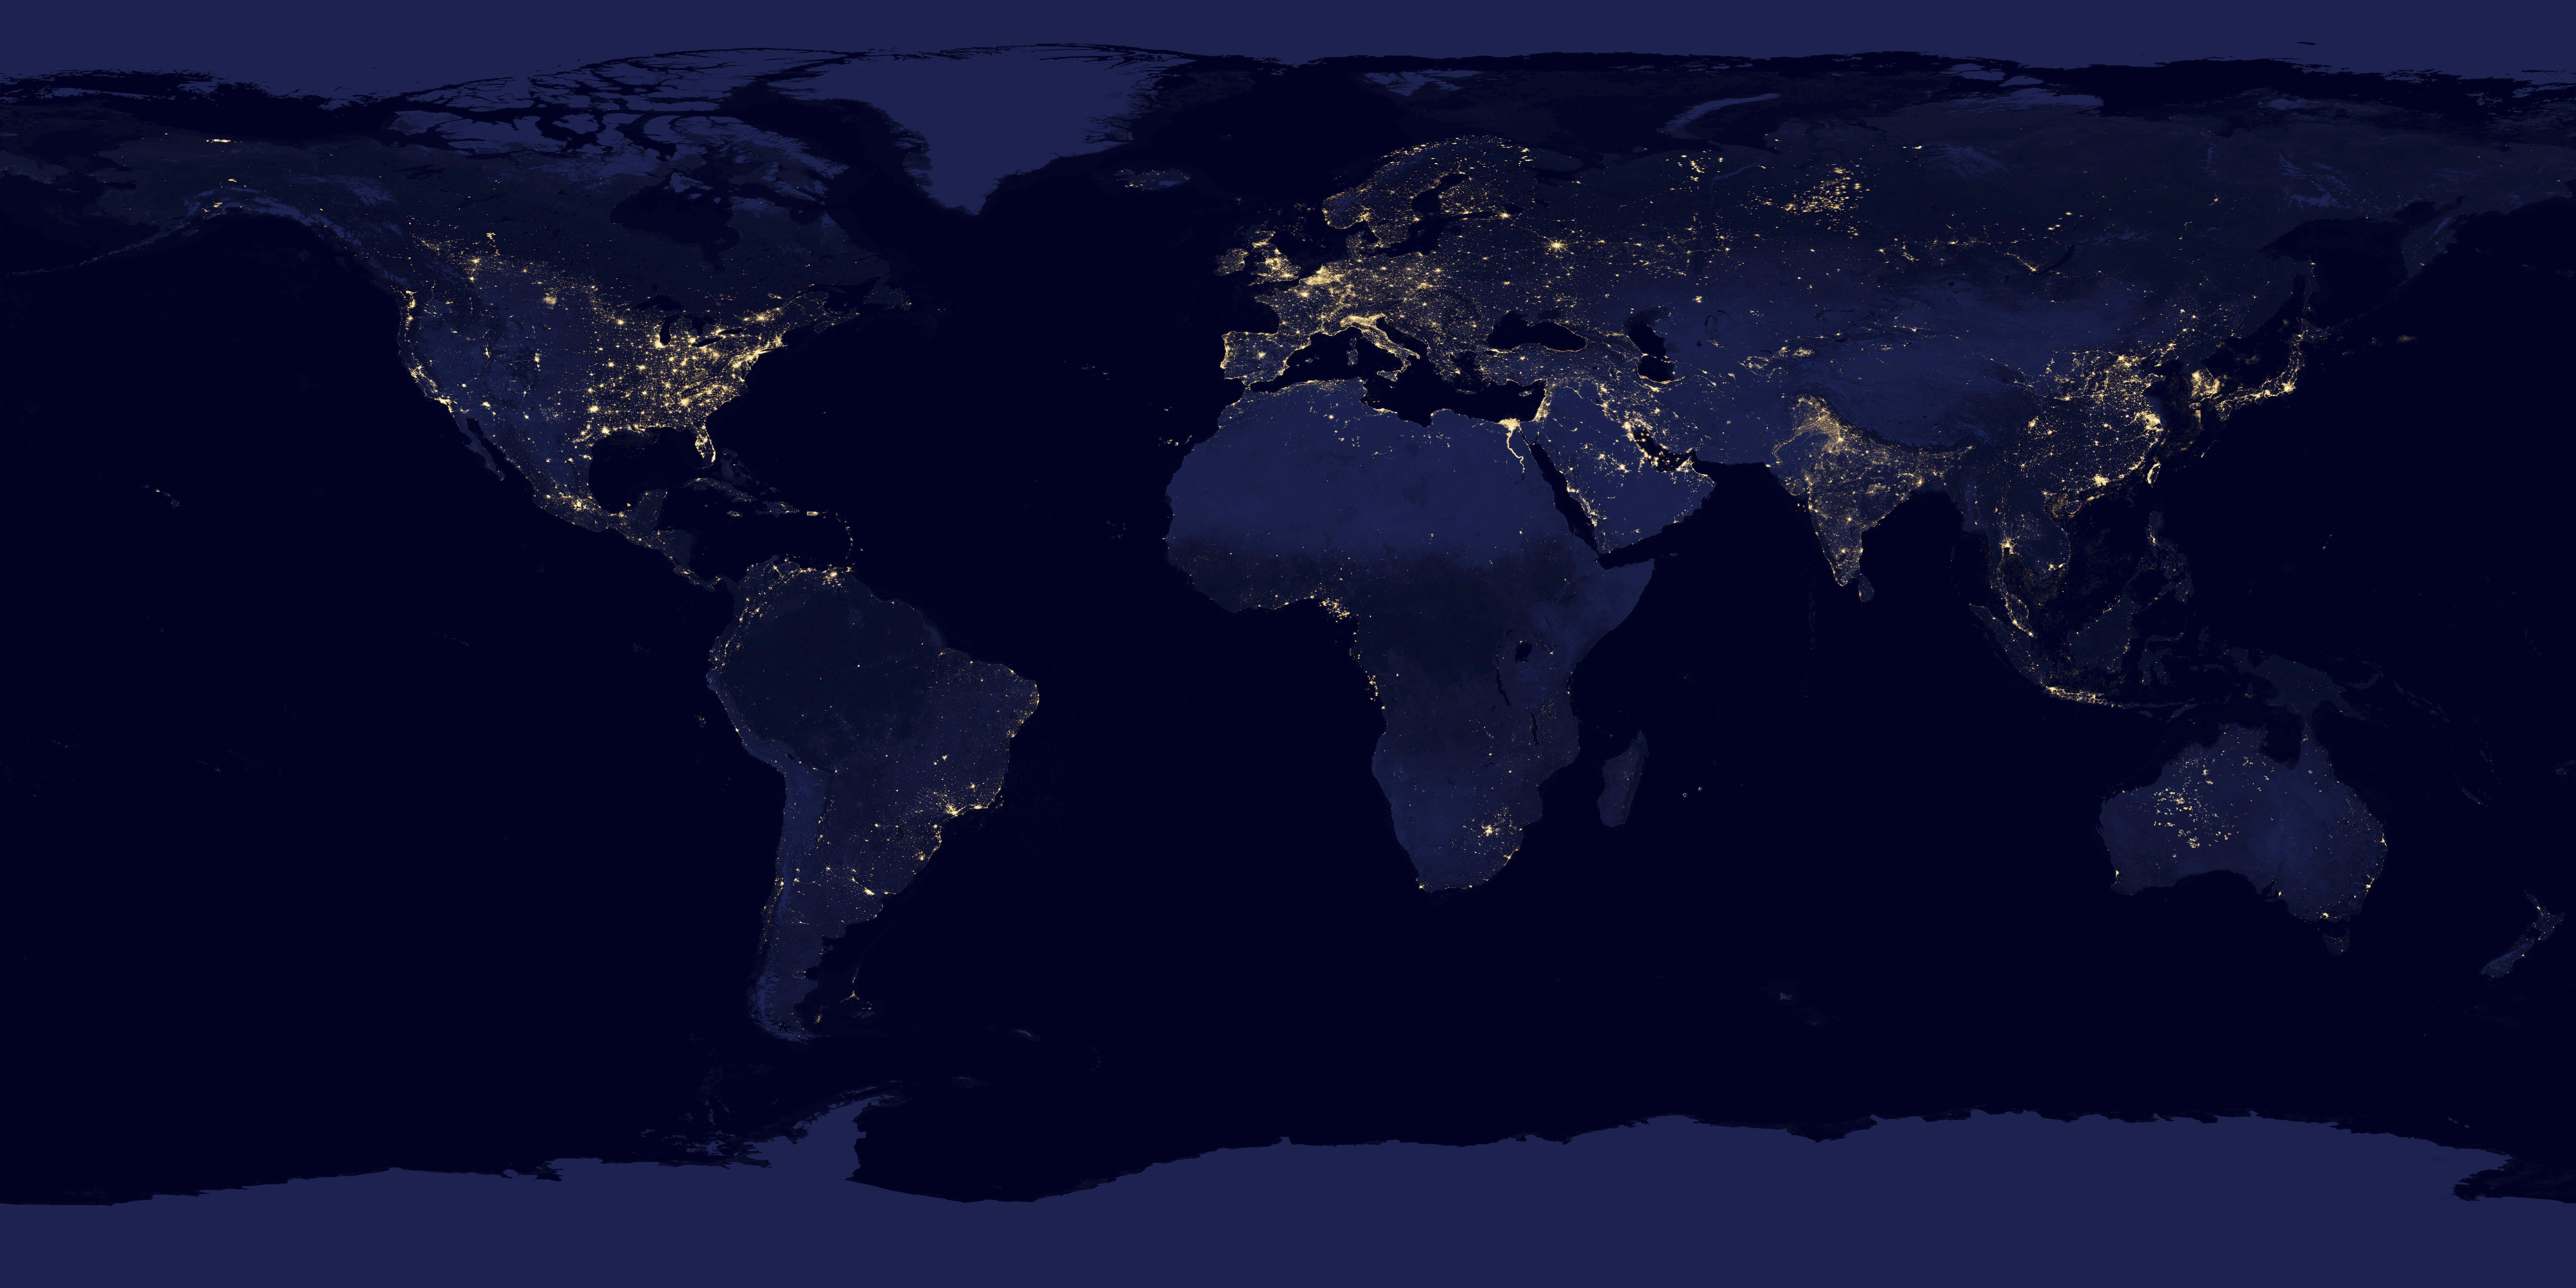 Lights across the earth are pictured in this NASA handout satellite image obtained by Reuters December 5, 2012. This new image of the Earth at night is a composite assembled from data acquired by the Suomi National Polar-orbiting Partnership (Suomi NPP) satellite over nine days in April 2012 and thirteen days in October 2012. It took 312 orbits and 2.5 terabytes of data to get a clear shot of every parcel of EarthÕs land surface and islands. REUTERS/NASA/Handout. (UNITED STATES - Tags: ENVIRONMENT SCIENCE TECHNOLOGY) THIS IMAGE HAS BEEN SUPPLIED BY A THIRD PARTY. IT IS DISTRIBUTED, EXACTLY AS RECEIVED BY REUTERS, AS A SERVICE TO CLIENTS. FOR EDITORIAL USE ONLY. NOT FOR SALE FOR MARKETING OR ADVERTISING CAMPAIGNS - TM3E8C51C4001